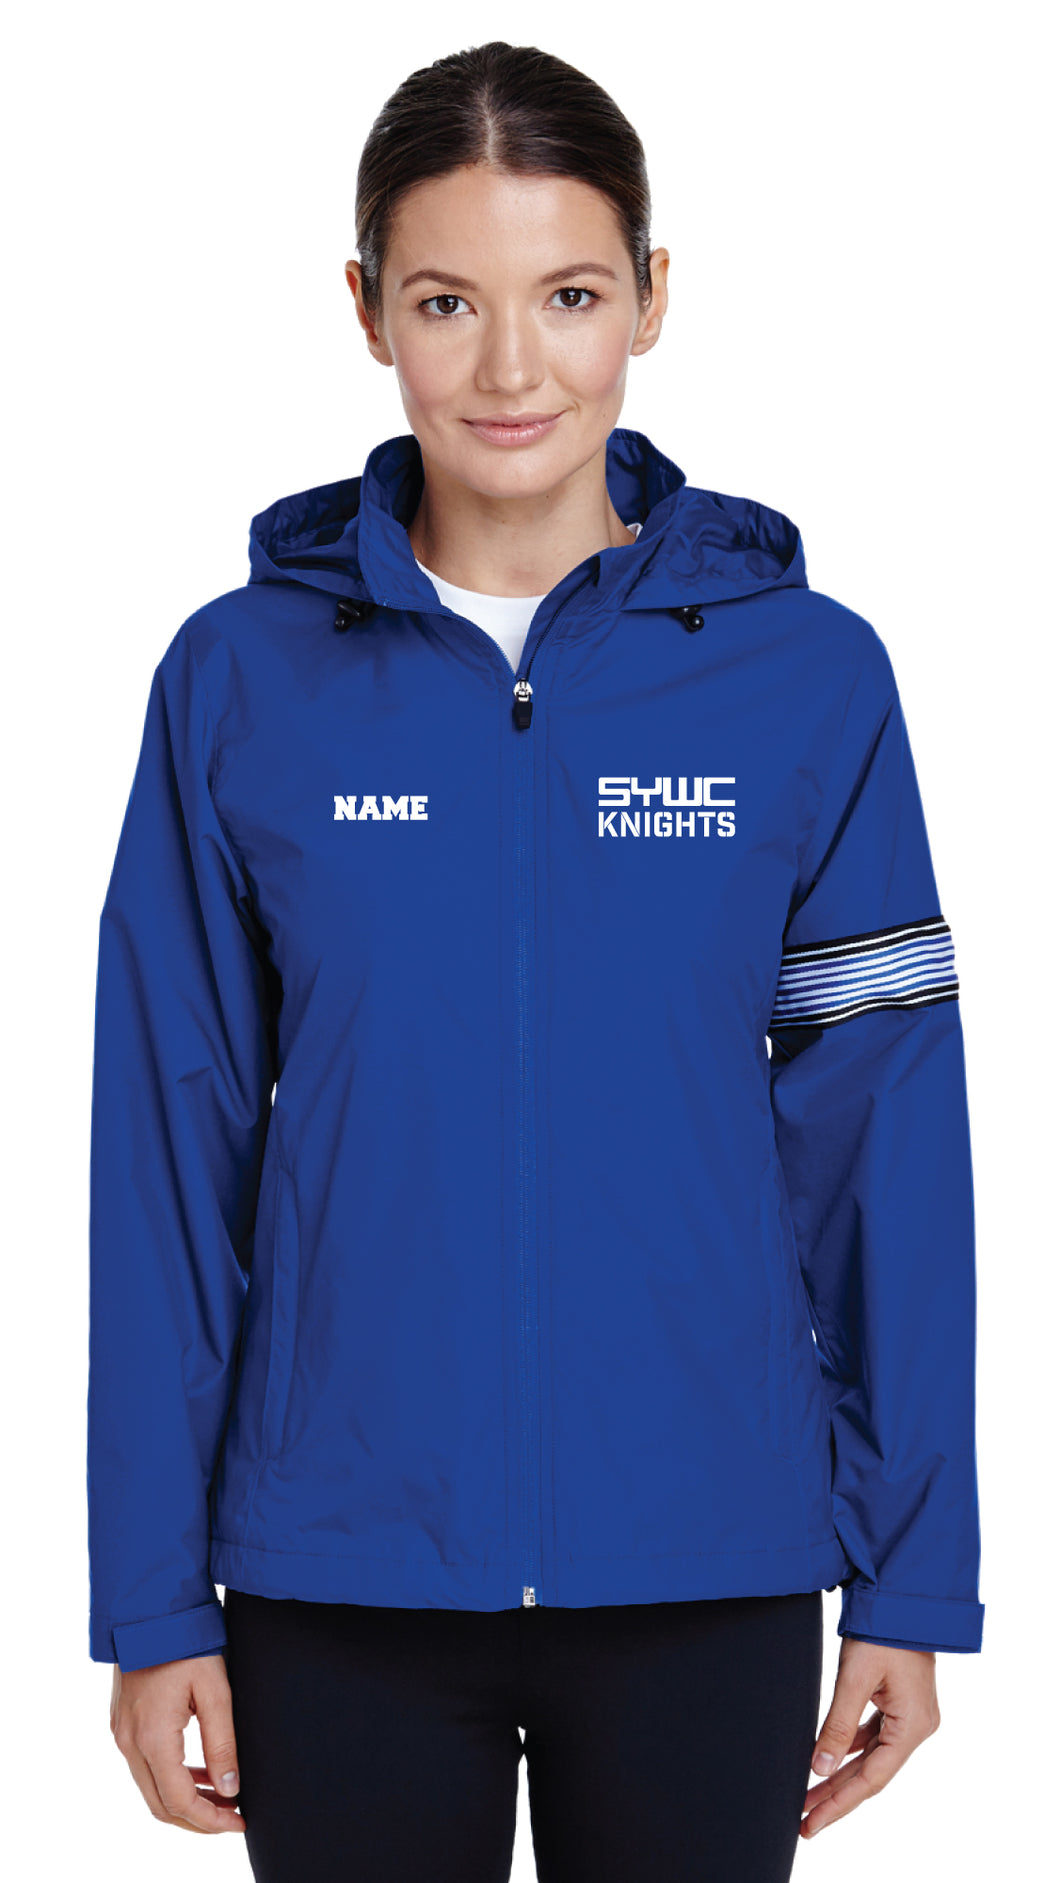 SYWC All Season Hooded Women's Jacket - Royal